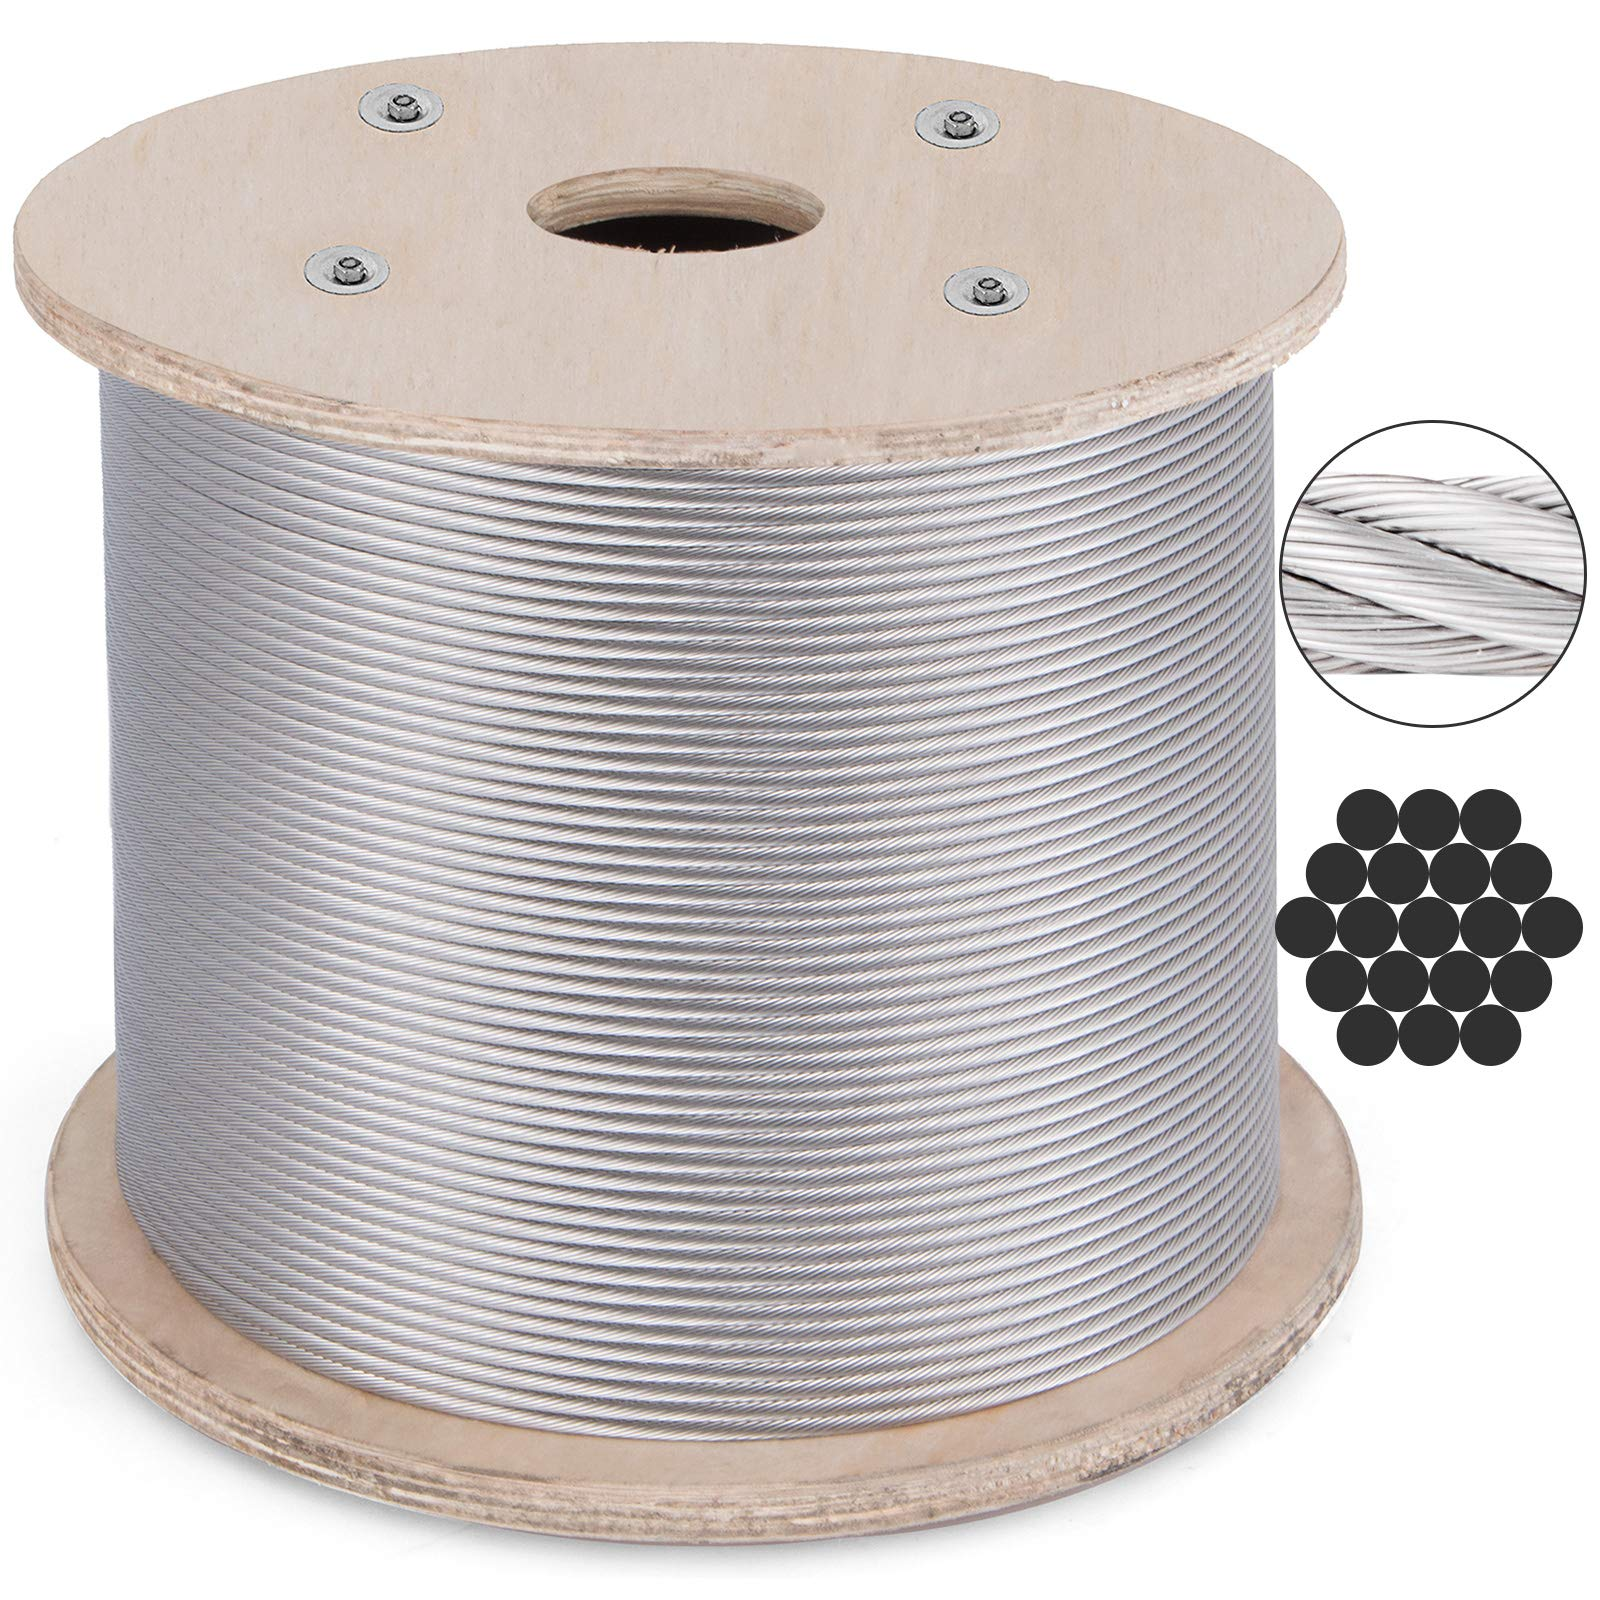 BestEquip 316 Stainless Steel Cable 1000FT Stainless Steel Wire Rope 3/16 Inch 1x19 Steel Cable for Railing Decking DIY Balustrade (1000FT) by BestEquip